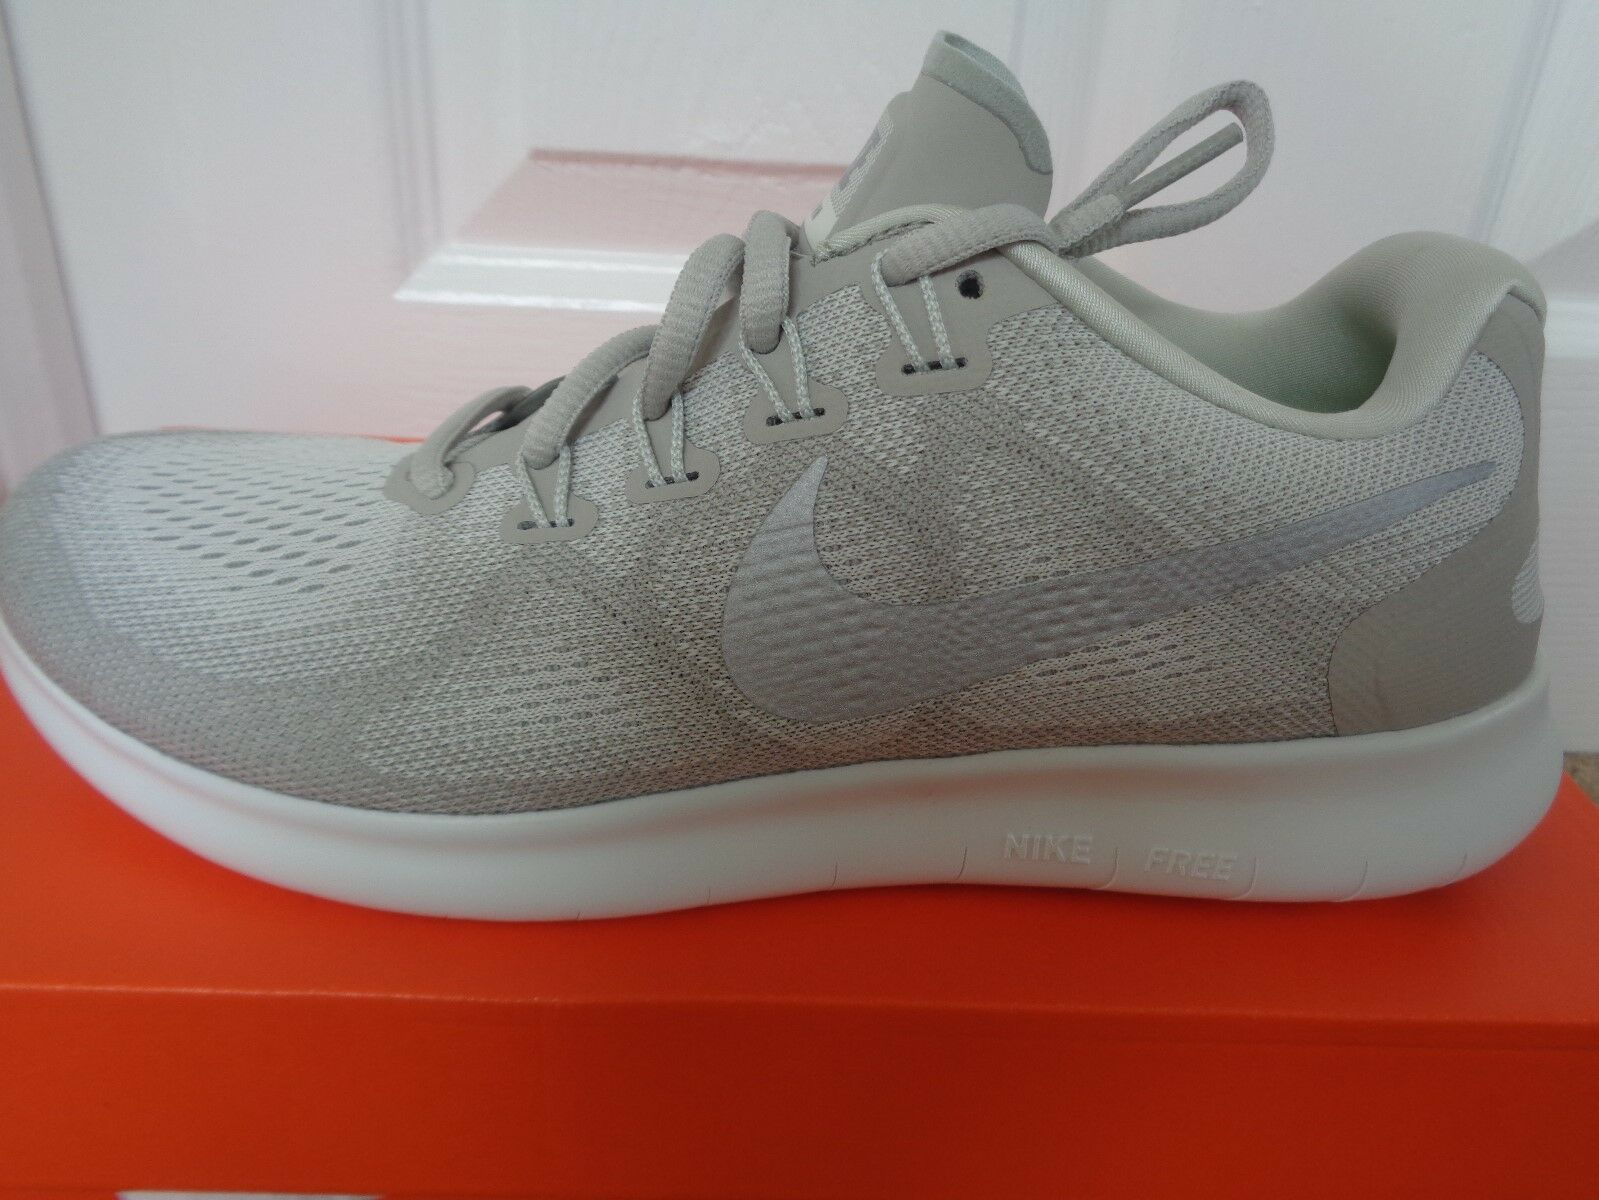 Nike Free RN 2018  Femme  trainers  chaussures  880840 104 uk 6.5 eu 40.5 us 9 NEW+BOX